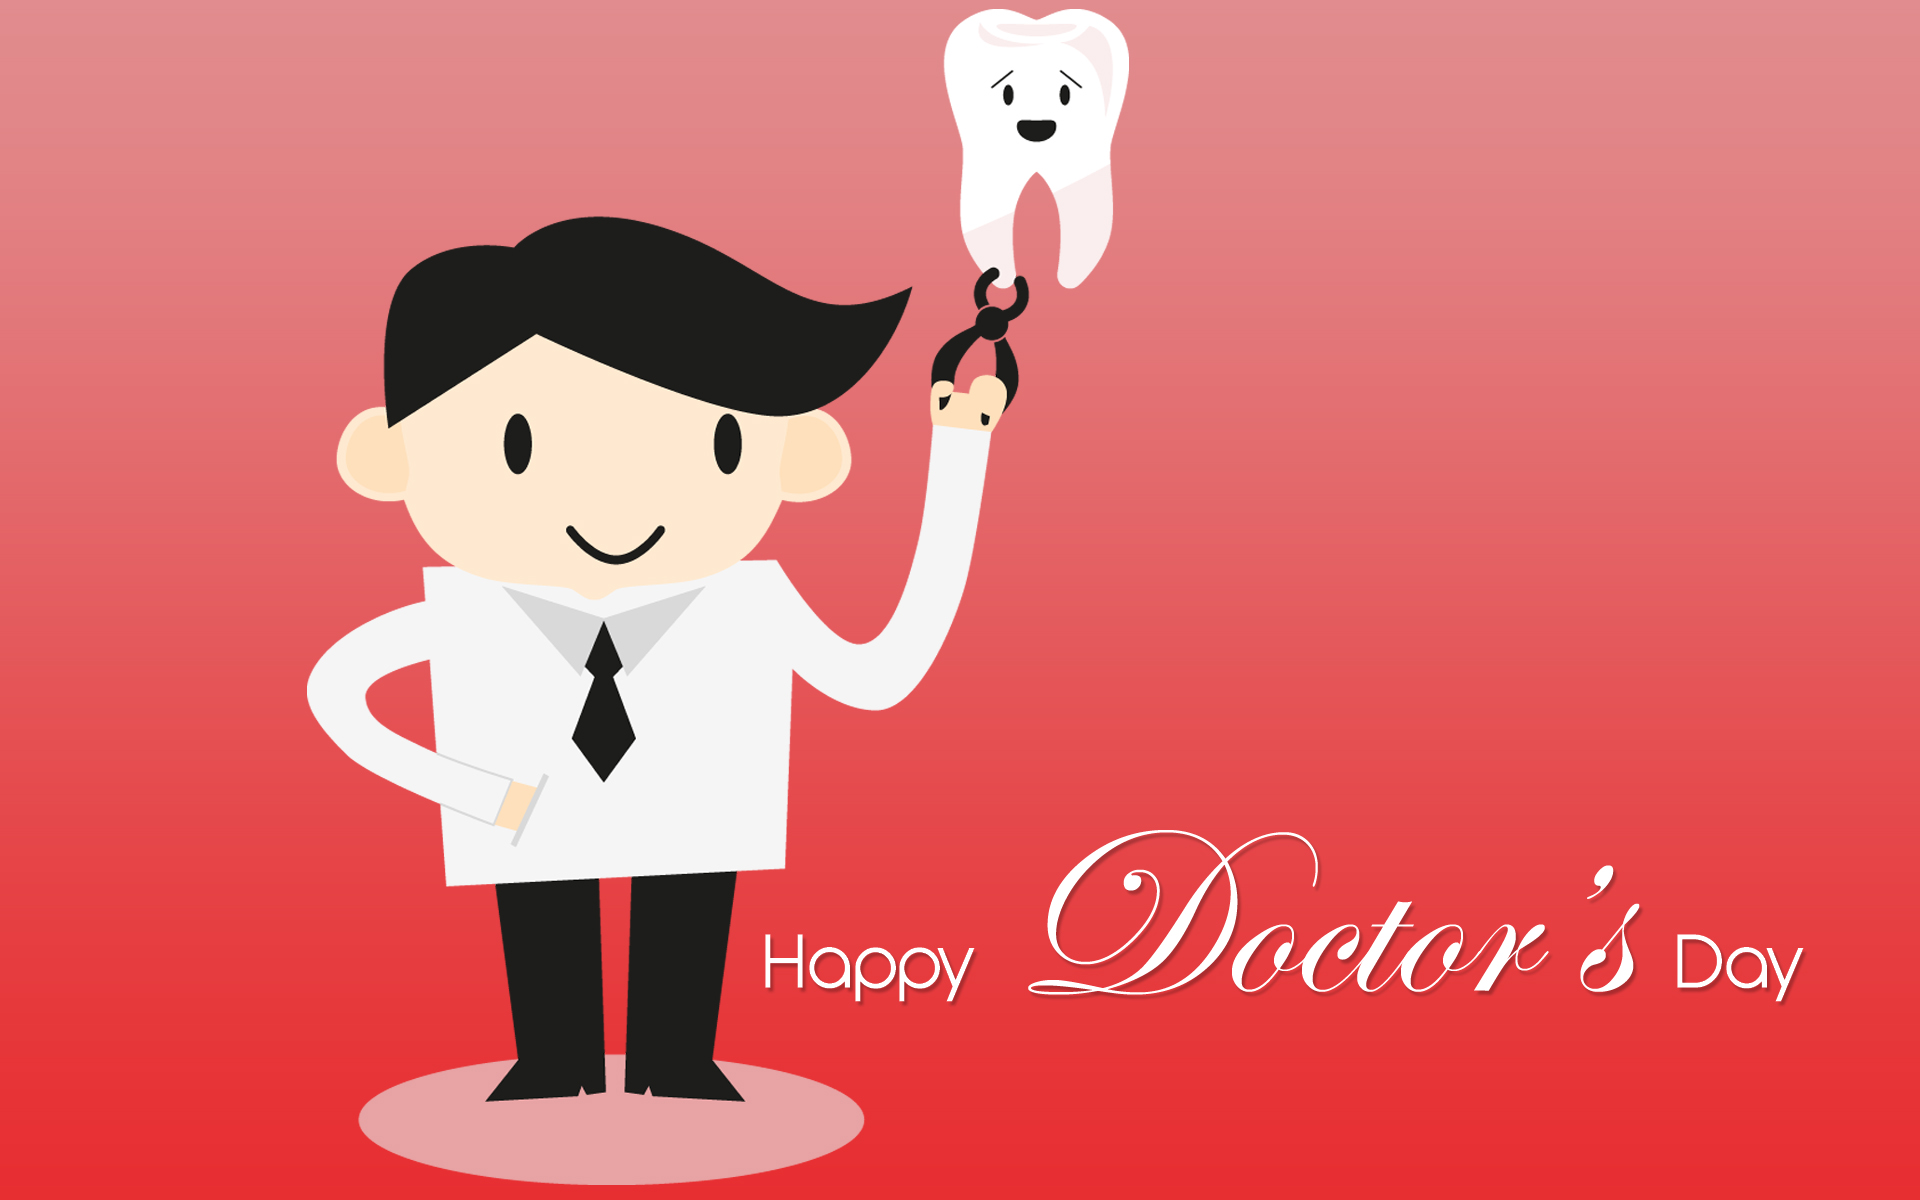 National doctors day 2017 quotes wishes images whatsapp dp fb staus sms national doctor day 2015 m4hsunfo